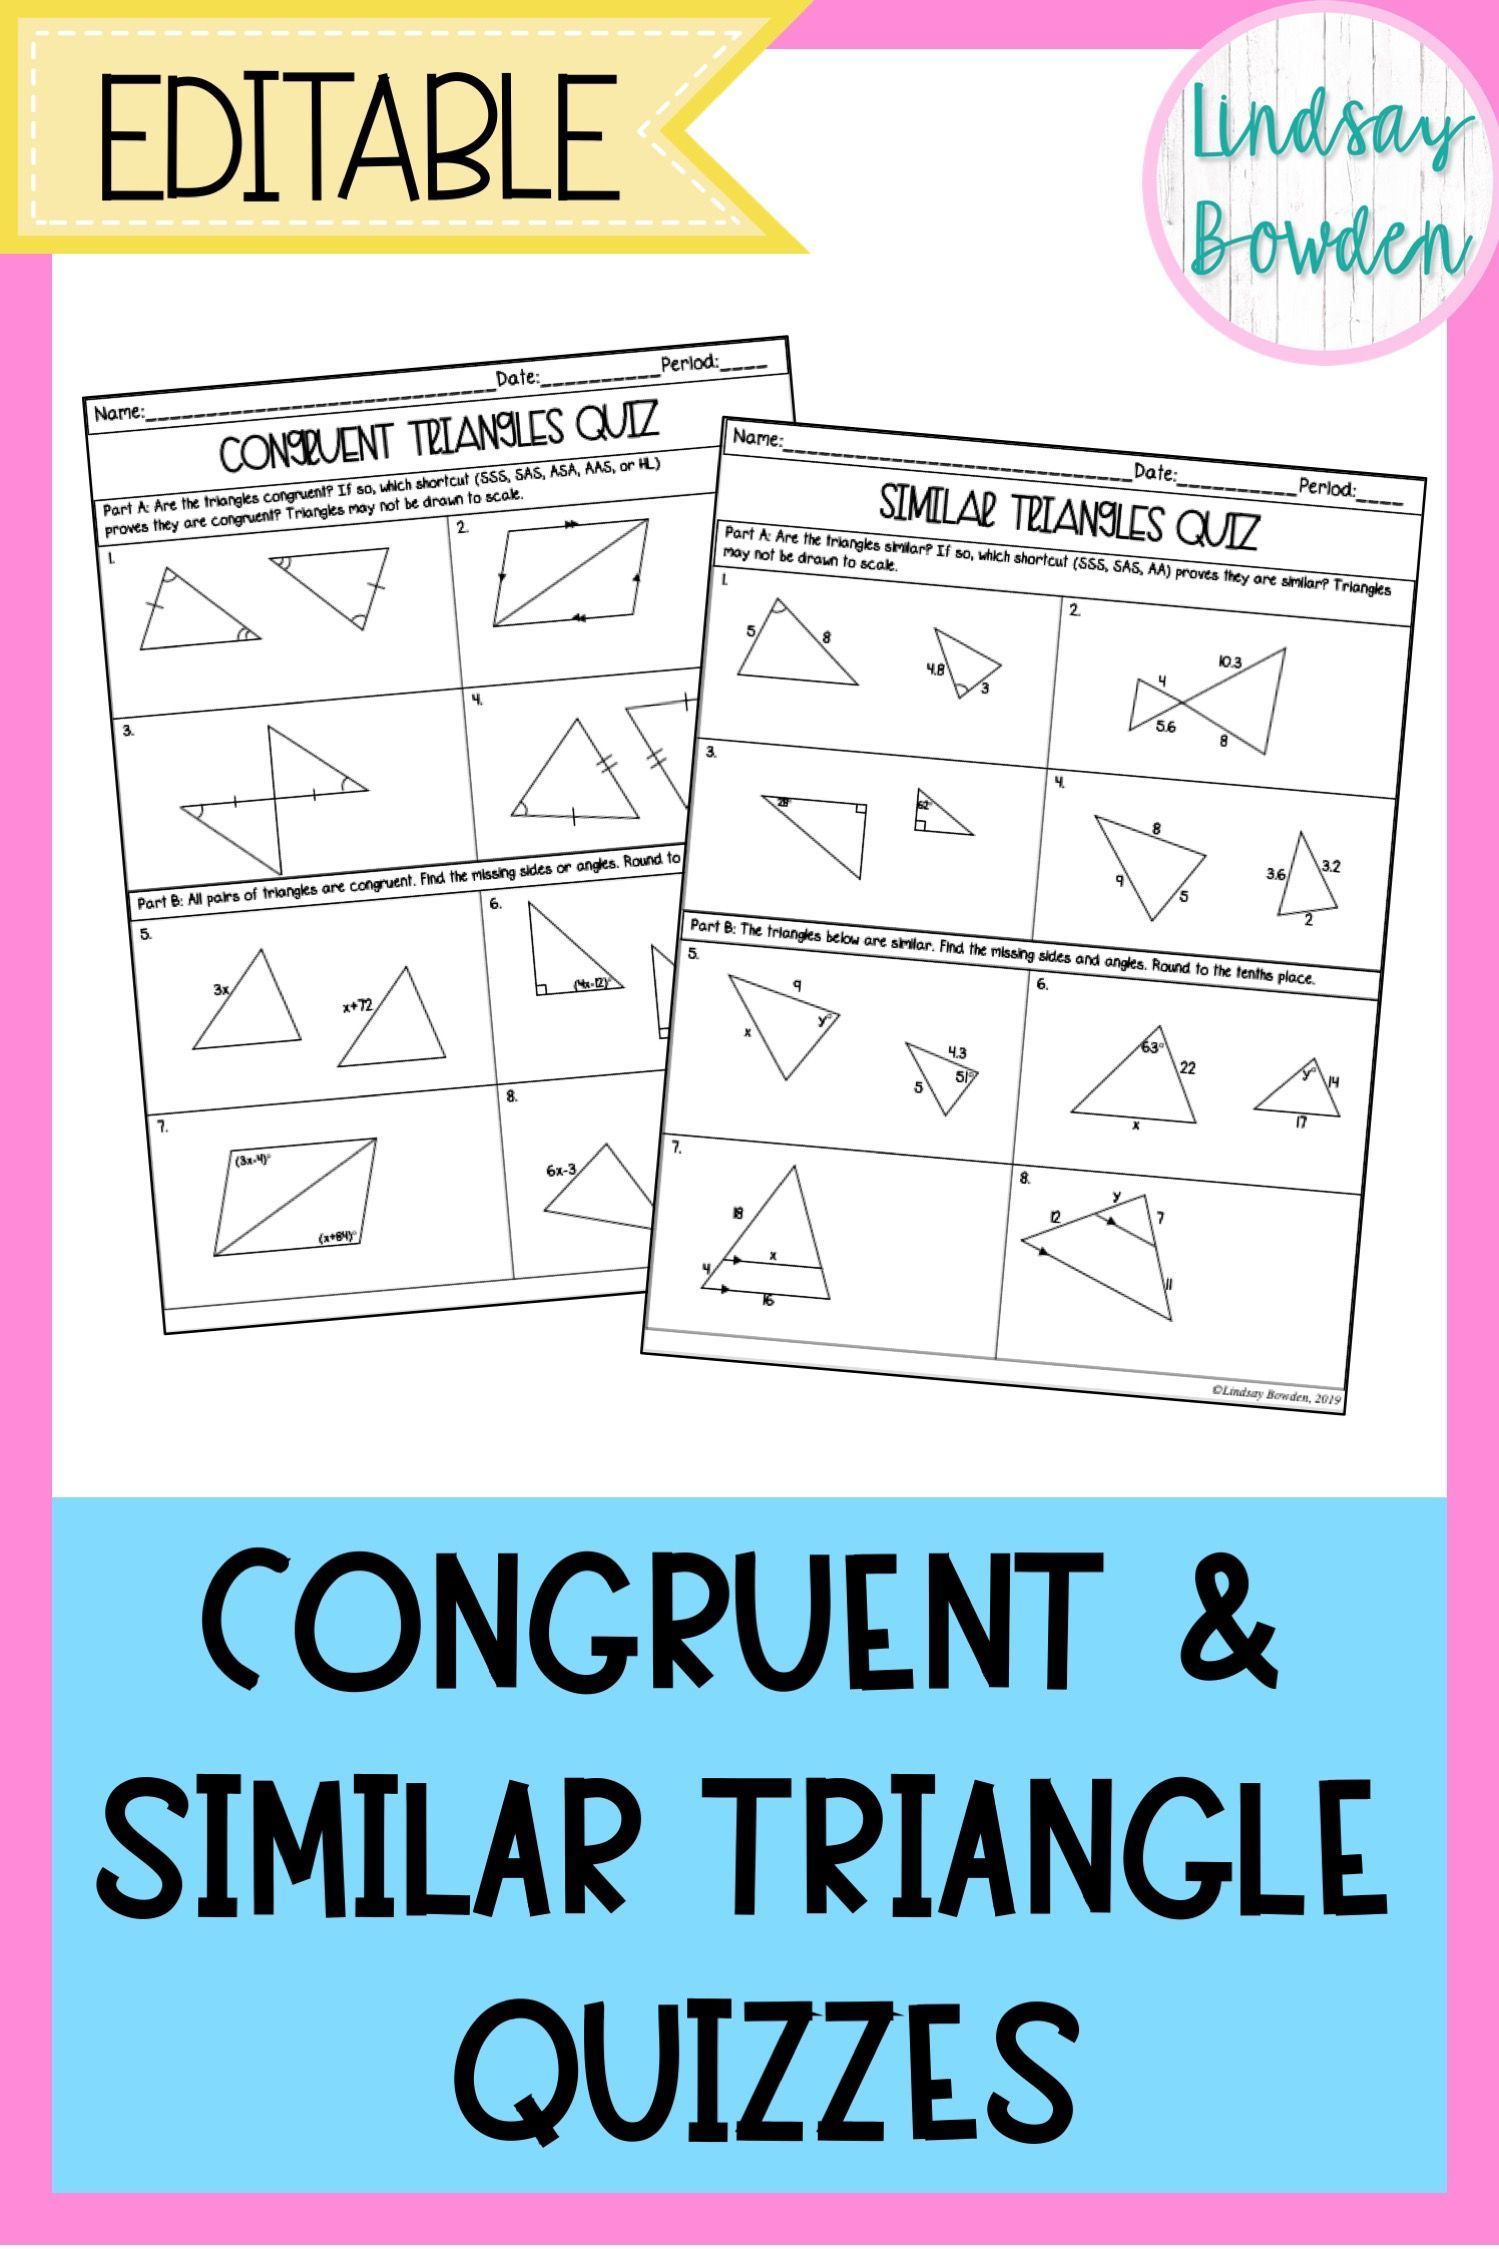 Congruent And Similar Triangle Quizzes These 3 Quizzes Cover The Properties Of Congruent And Similar Tr Similar Triangles Geometry High School Math Assessment